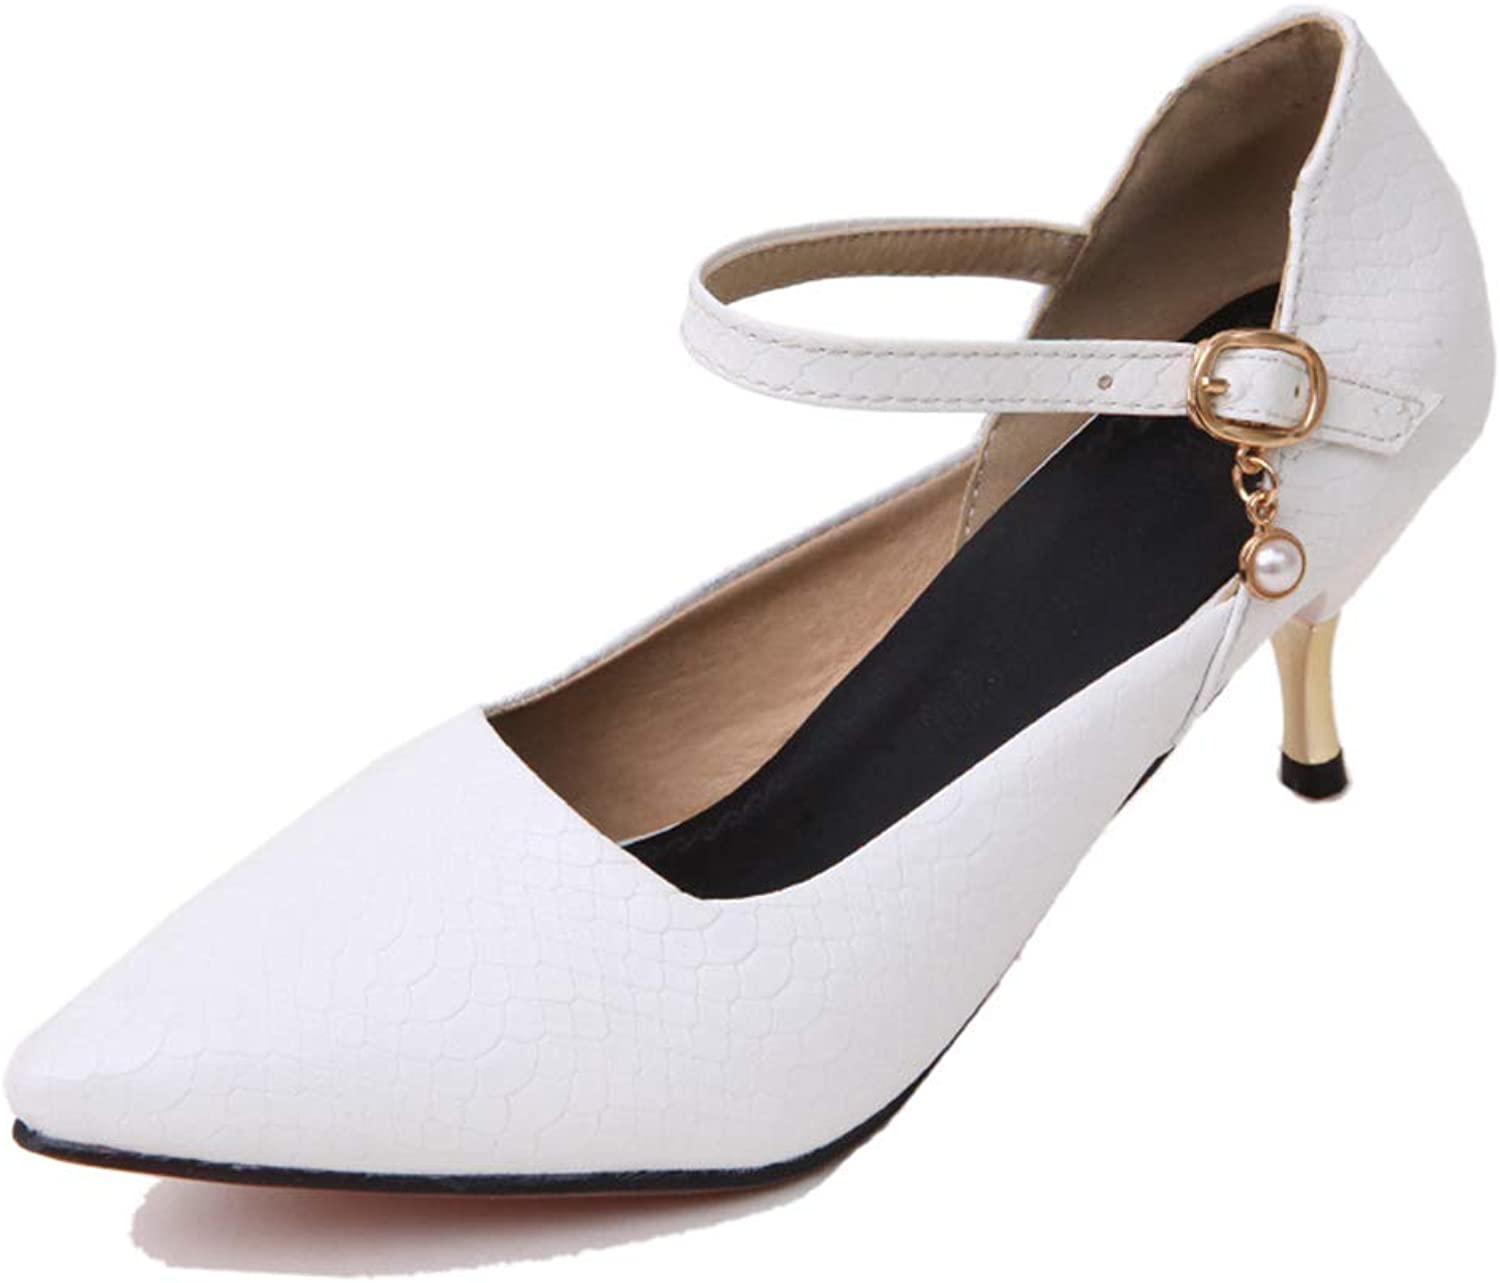 Btrada Women's Sexy Pointy Toe Pumps Fashion Mid-Heel Shallow Mouth Dress shoes Wedding Party Stiletto